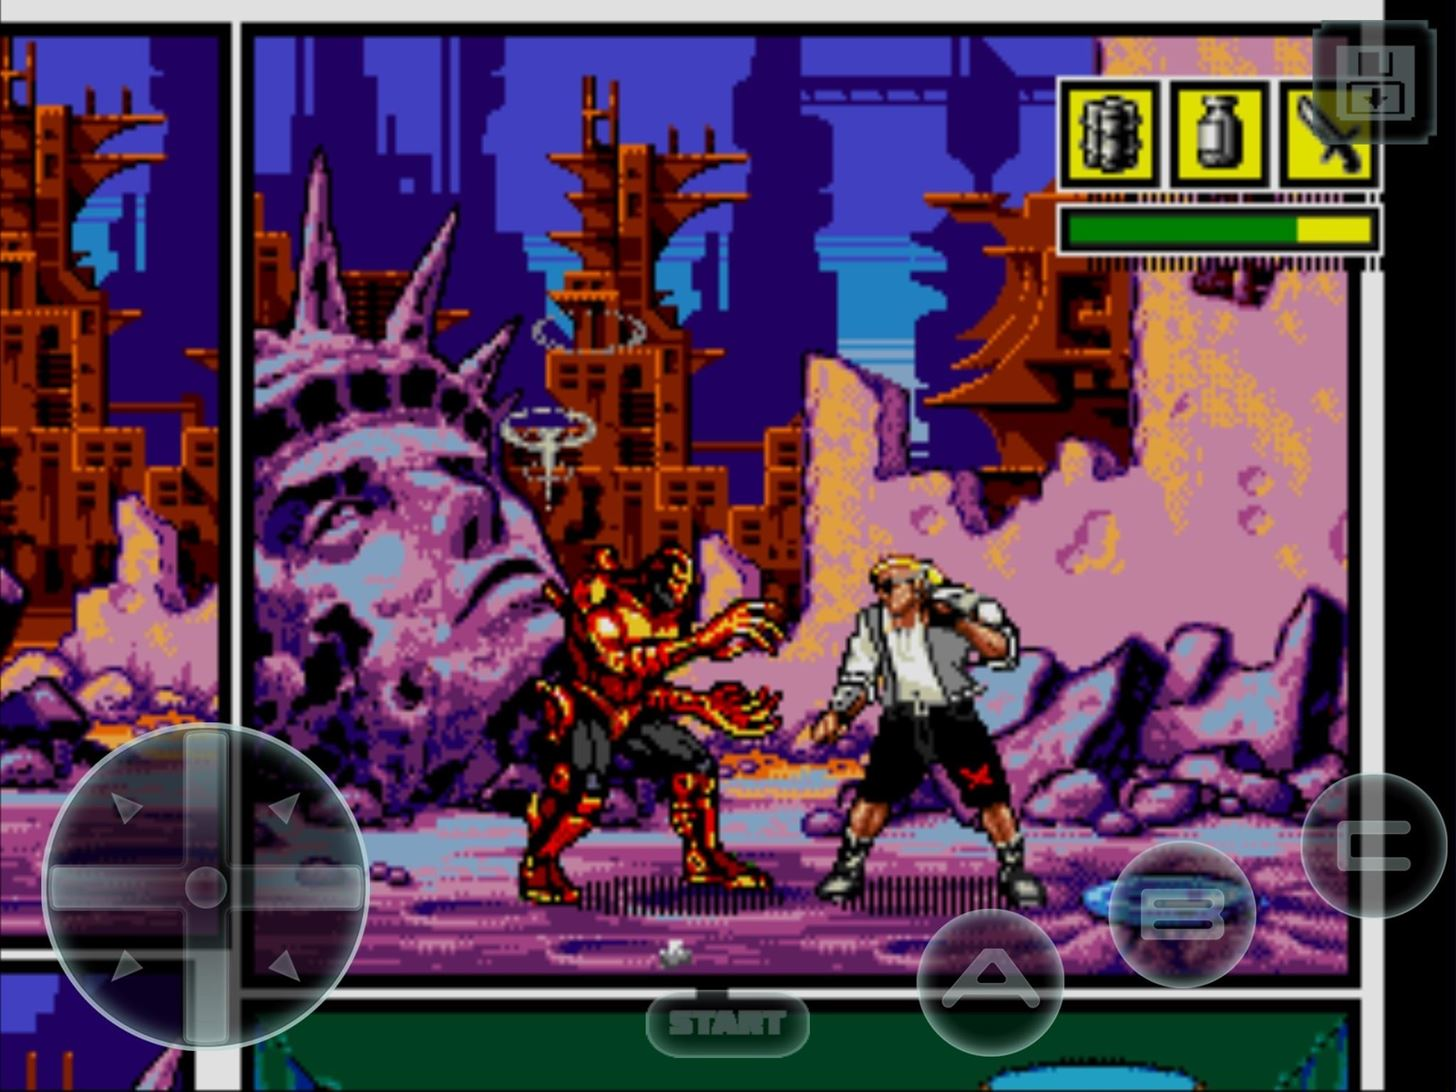 Play 'Comix Zone' on Your iPhone Now & Relive the Glory Days of Arcade-Style Fighting Games